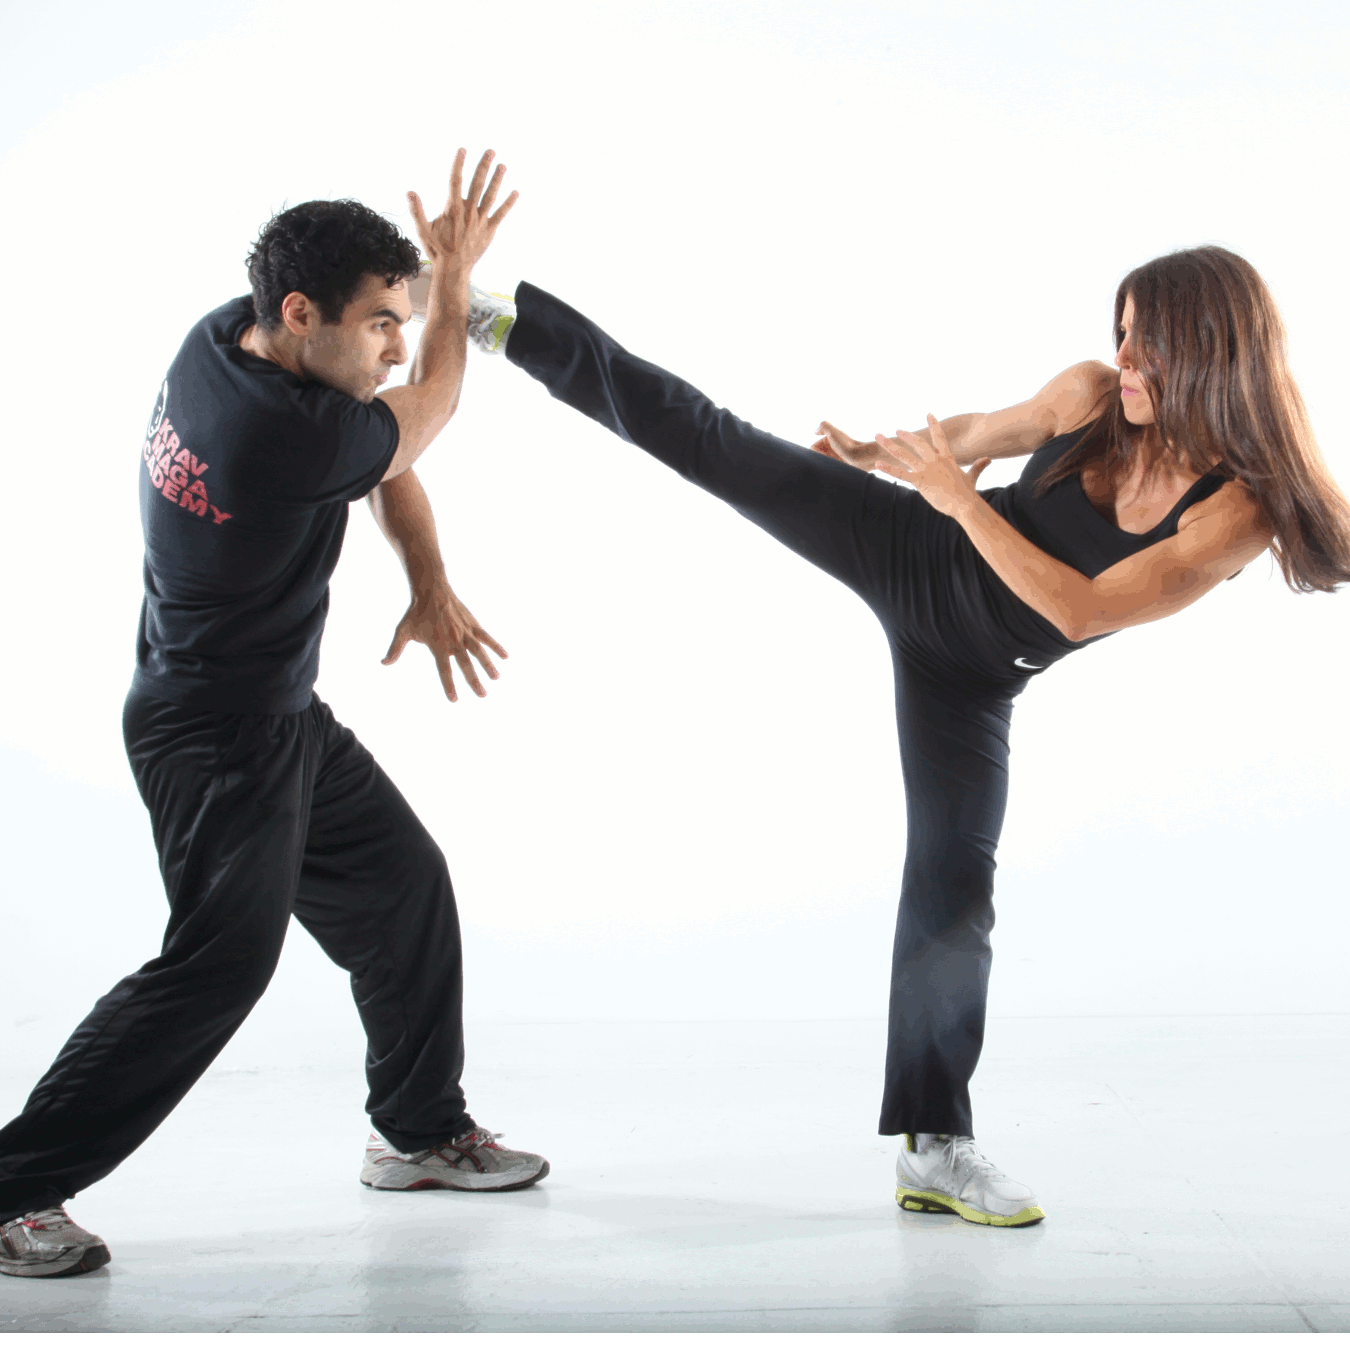 Self-Defense (Krav Maga)